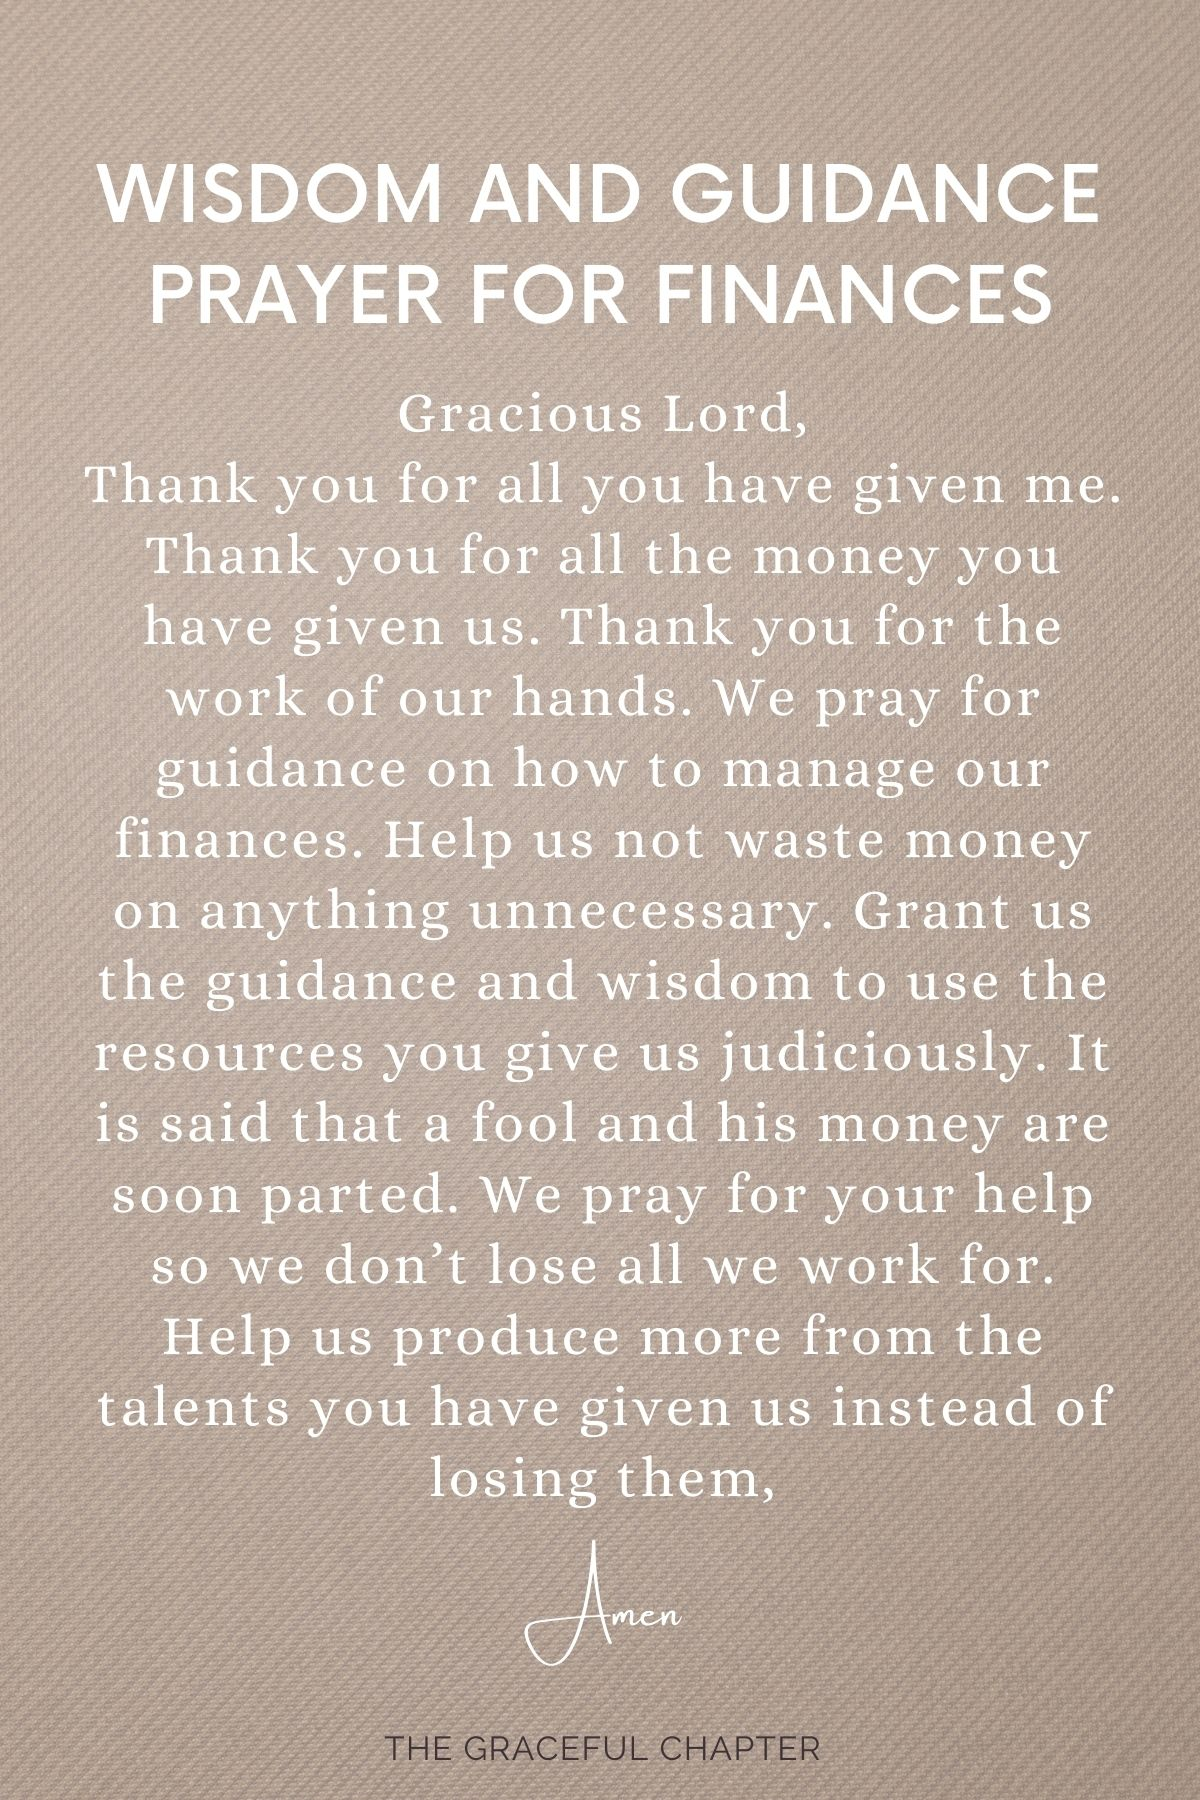 Wisdom and guidance for finances